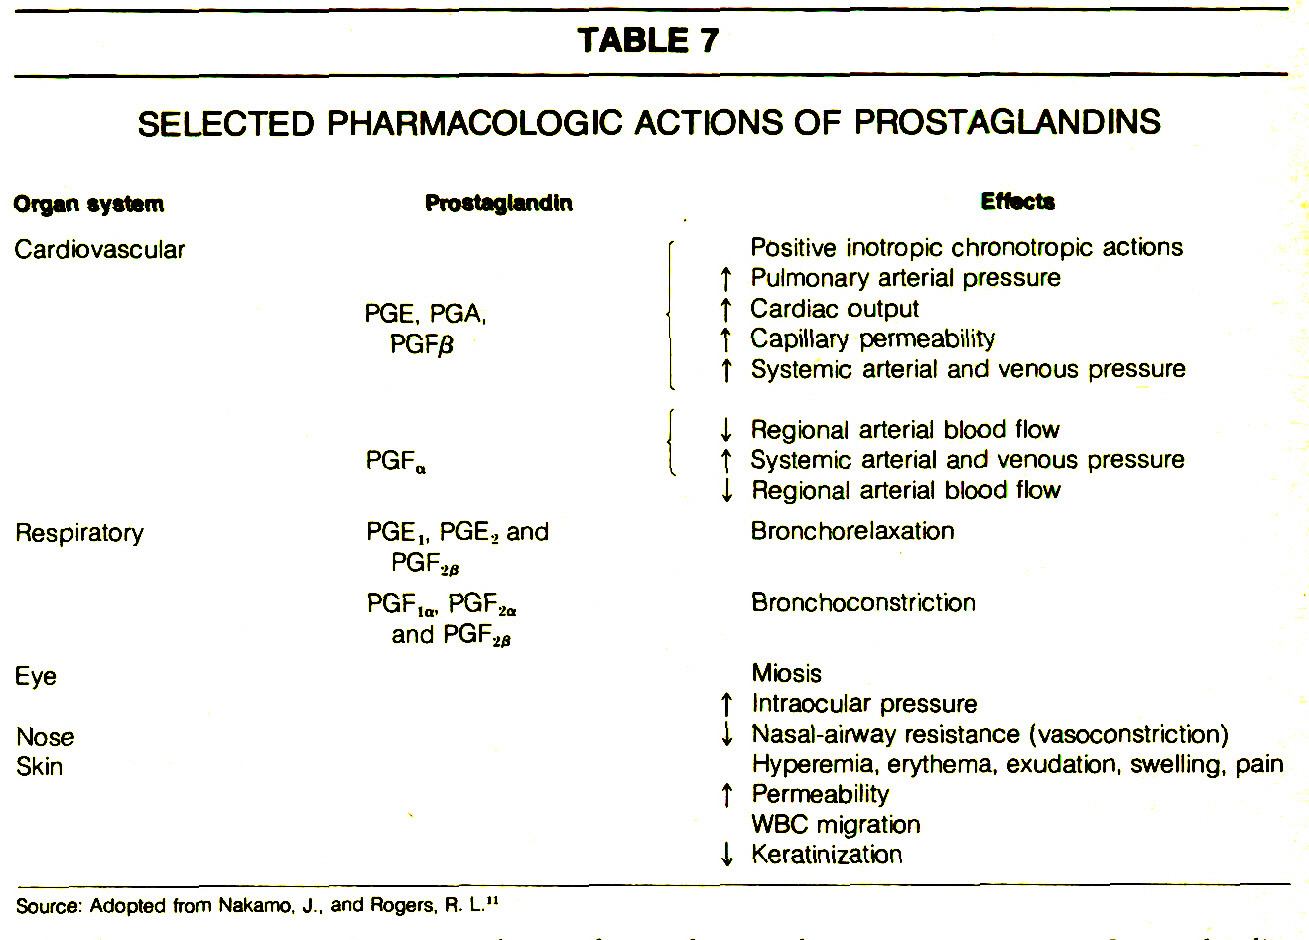 TABLE 7SELECTED PHARMACOLOGIC ACTIONS OF PROSTAGLANDINS